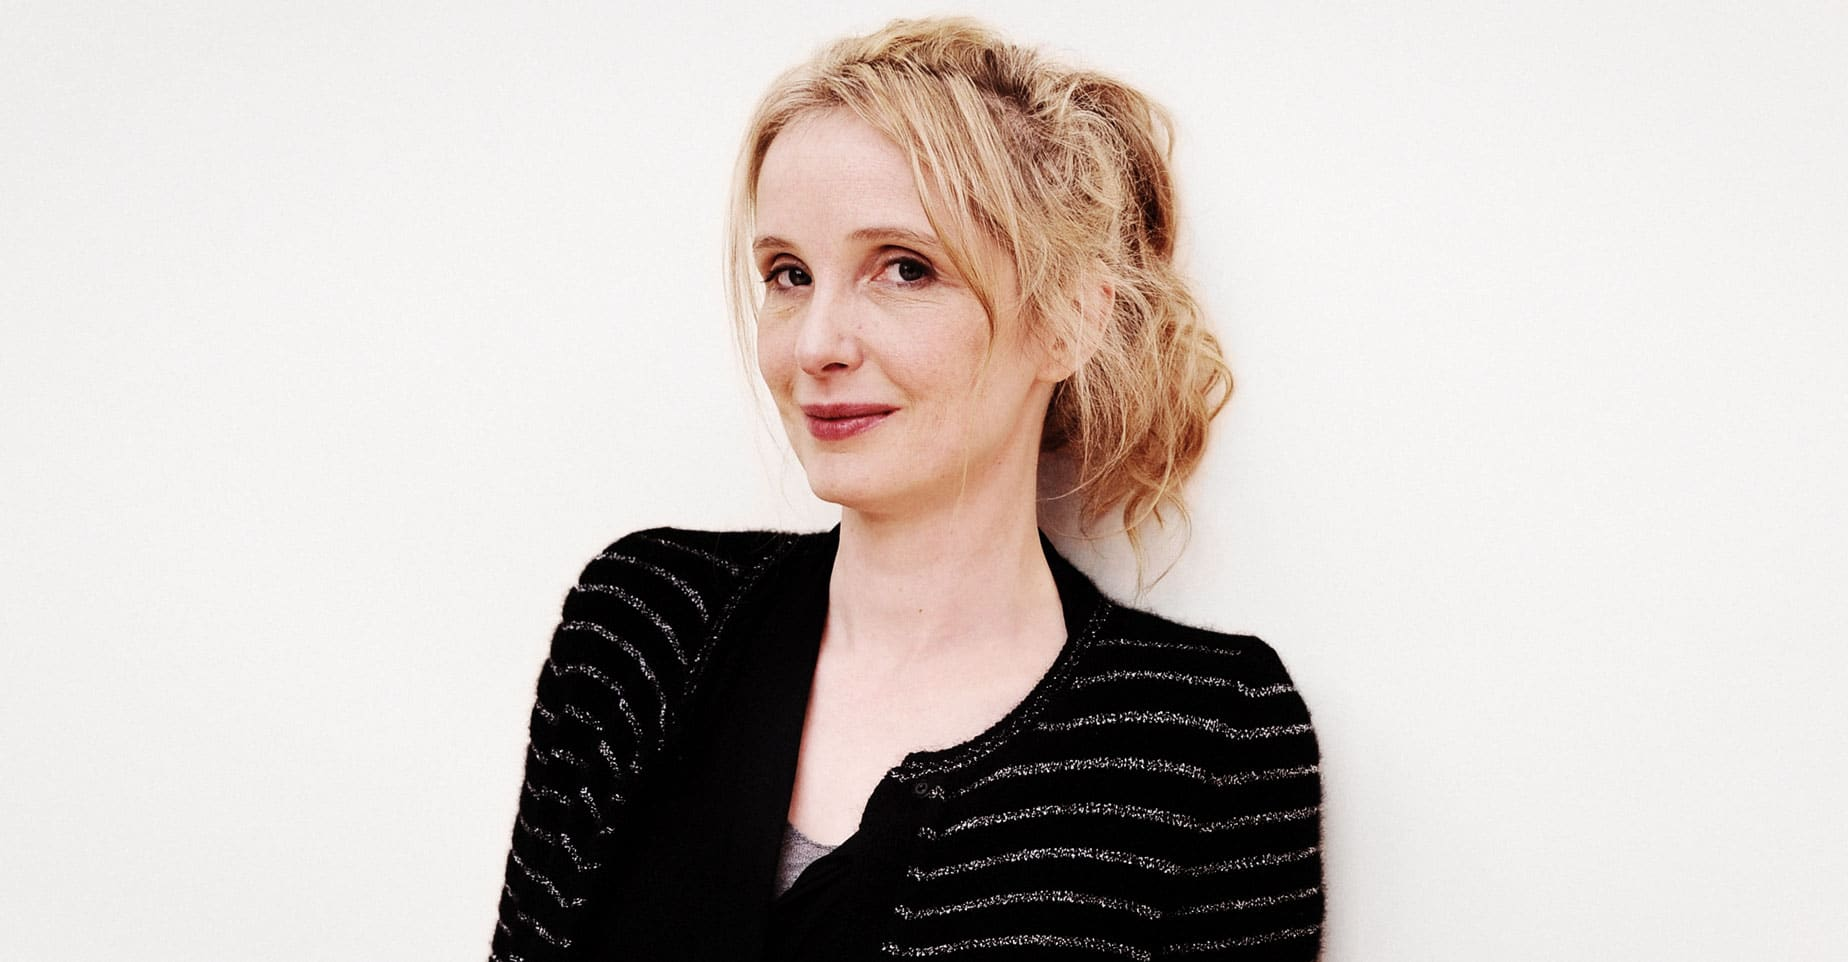 Julie Delpy French Actress, Director, Screenwriter, Singer, Song writer